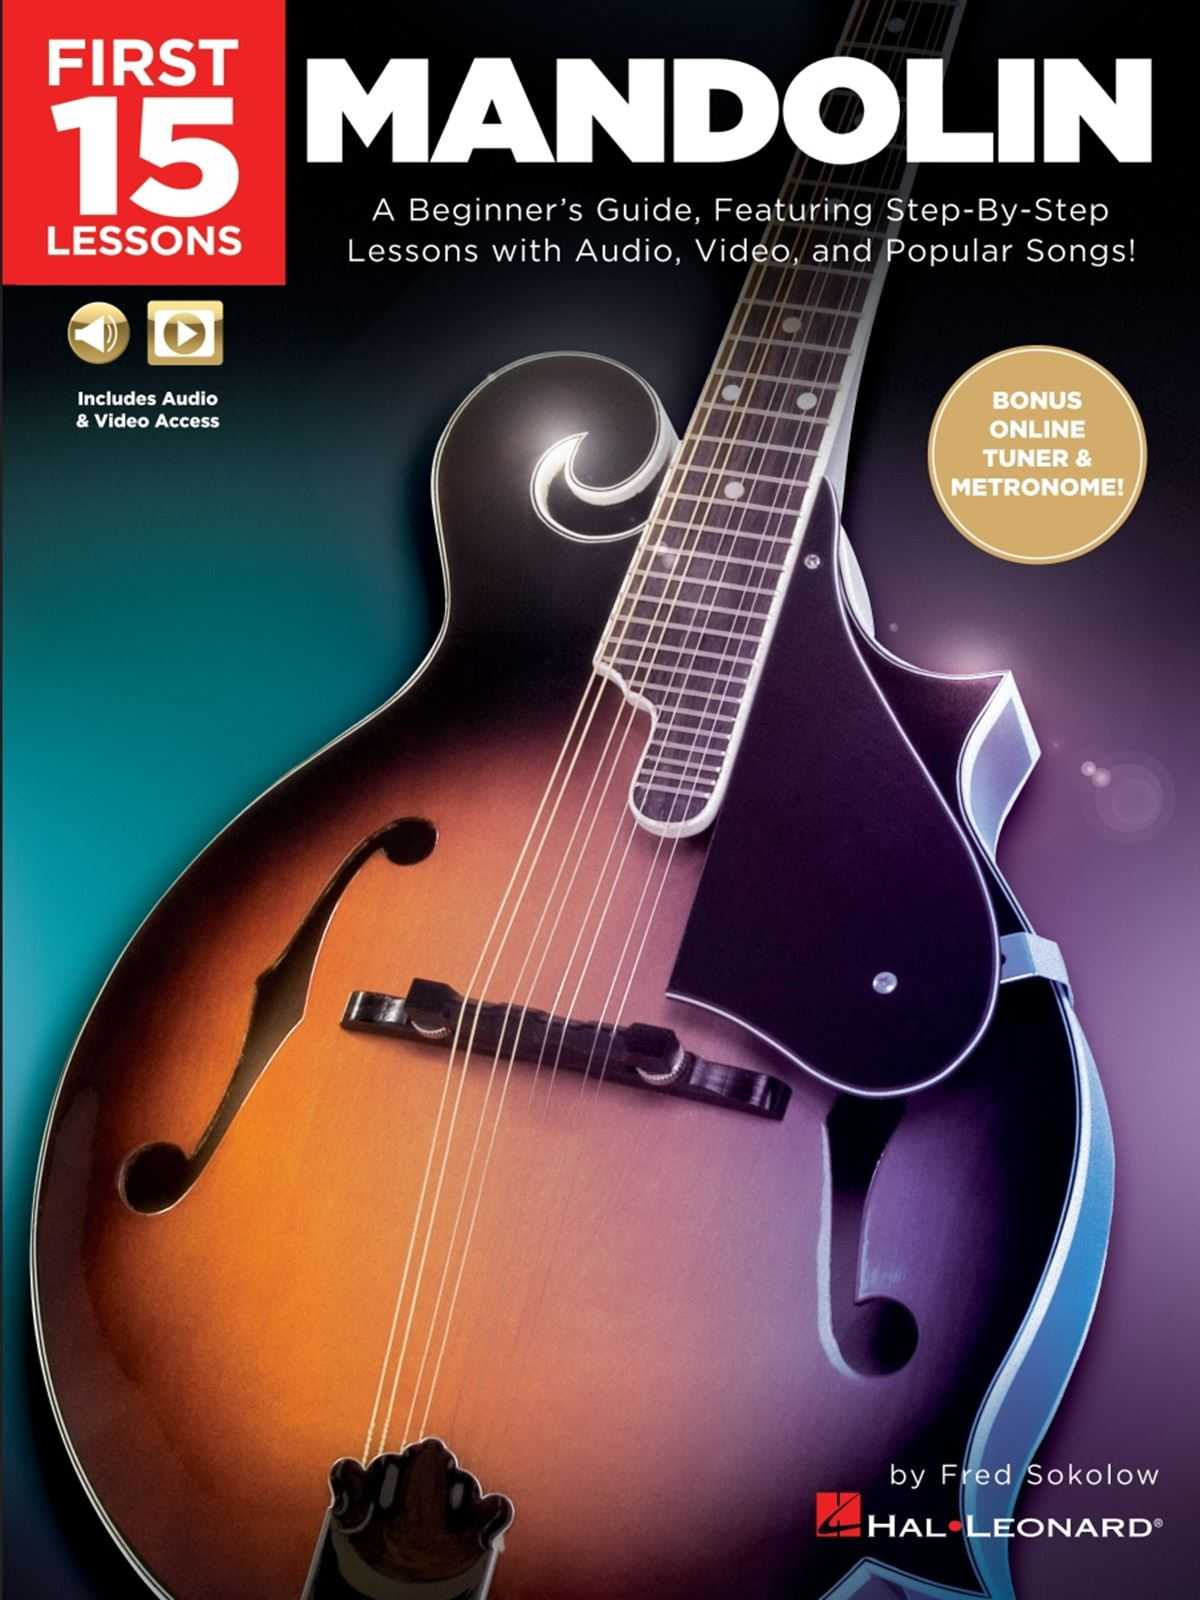 FIRST 15 LESSONS - MANDOLIN: A BEGINNER'S GUIDE, FEATURING STEP-BY-STEP LESSONS WITH AUDIO, VIDEO, AND POPULAR SONGS!